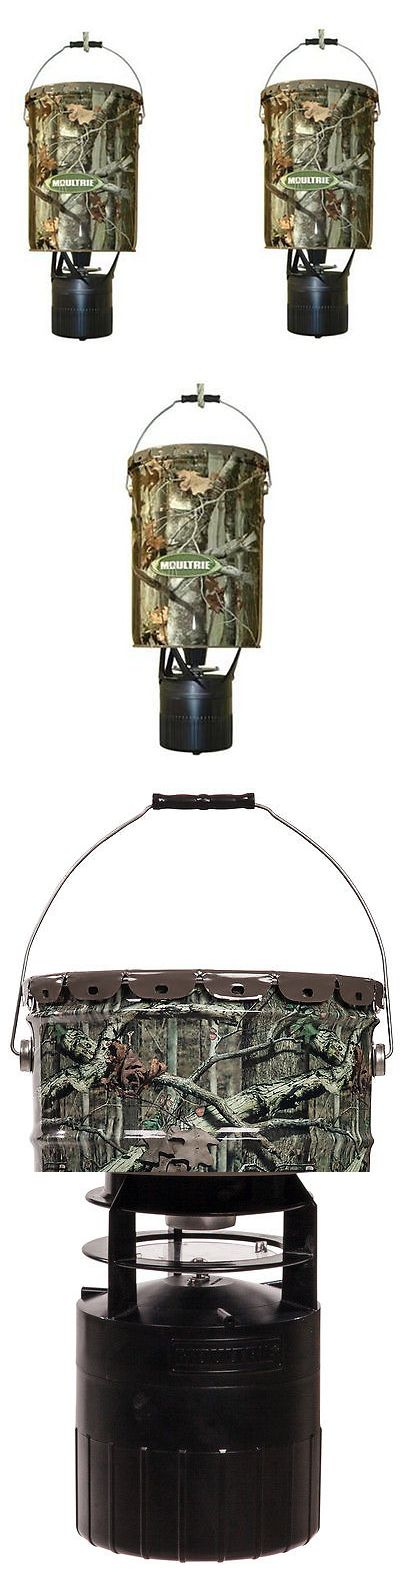 Game Feeders and Feed 52504: 2 Moultrie Mfh-Ep 6.5 Gallon Econo Plus Hanging Deer Feeders W/ Photocell Timer BUY IT NOW ONLY: $89.99